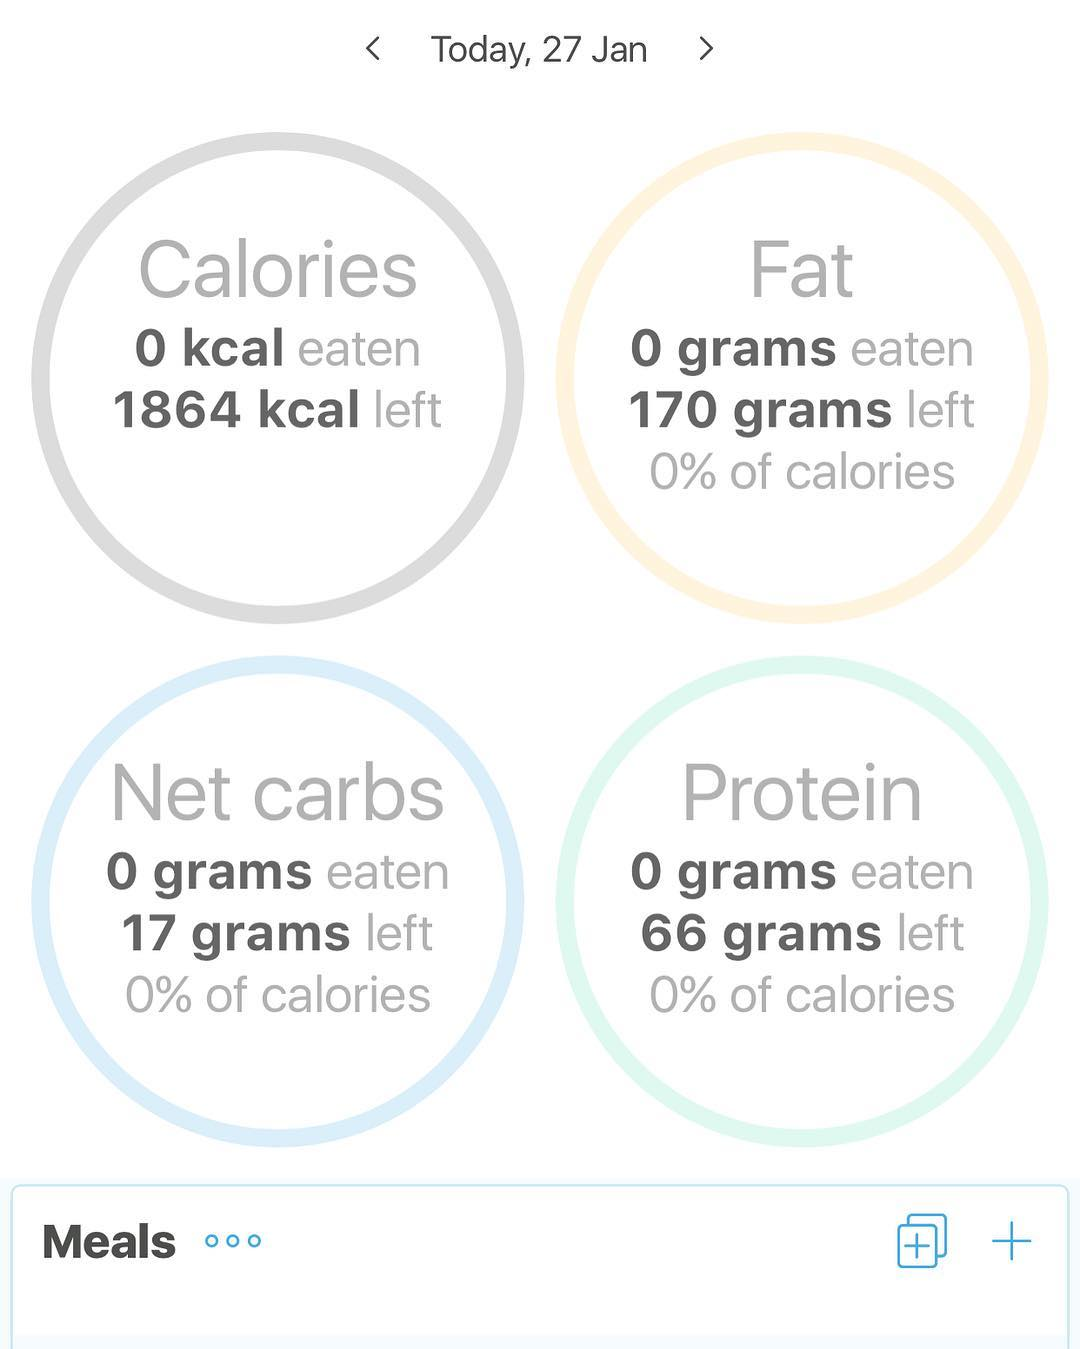 Is there an app you use to keep track of your macros? I've used Keto Diet app but have gotten to the point that I just really know what's going on with my diet without it